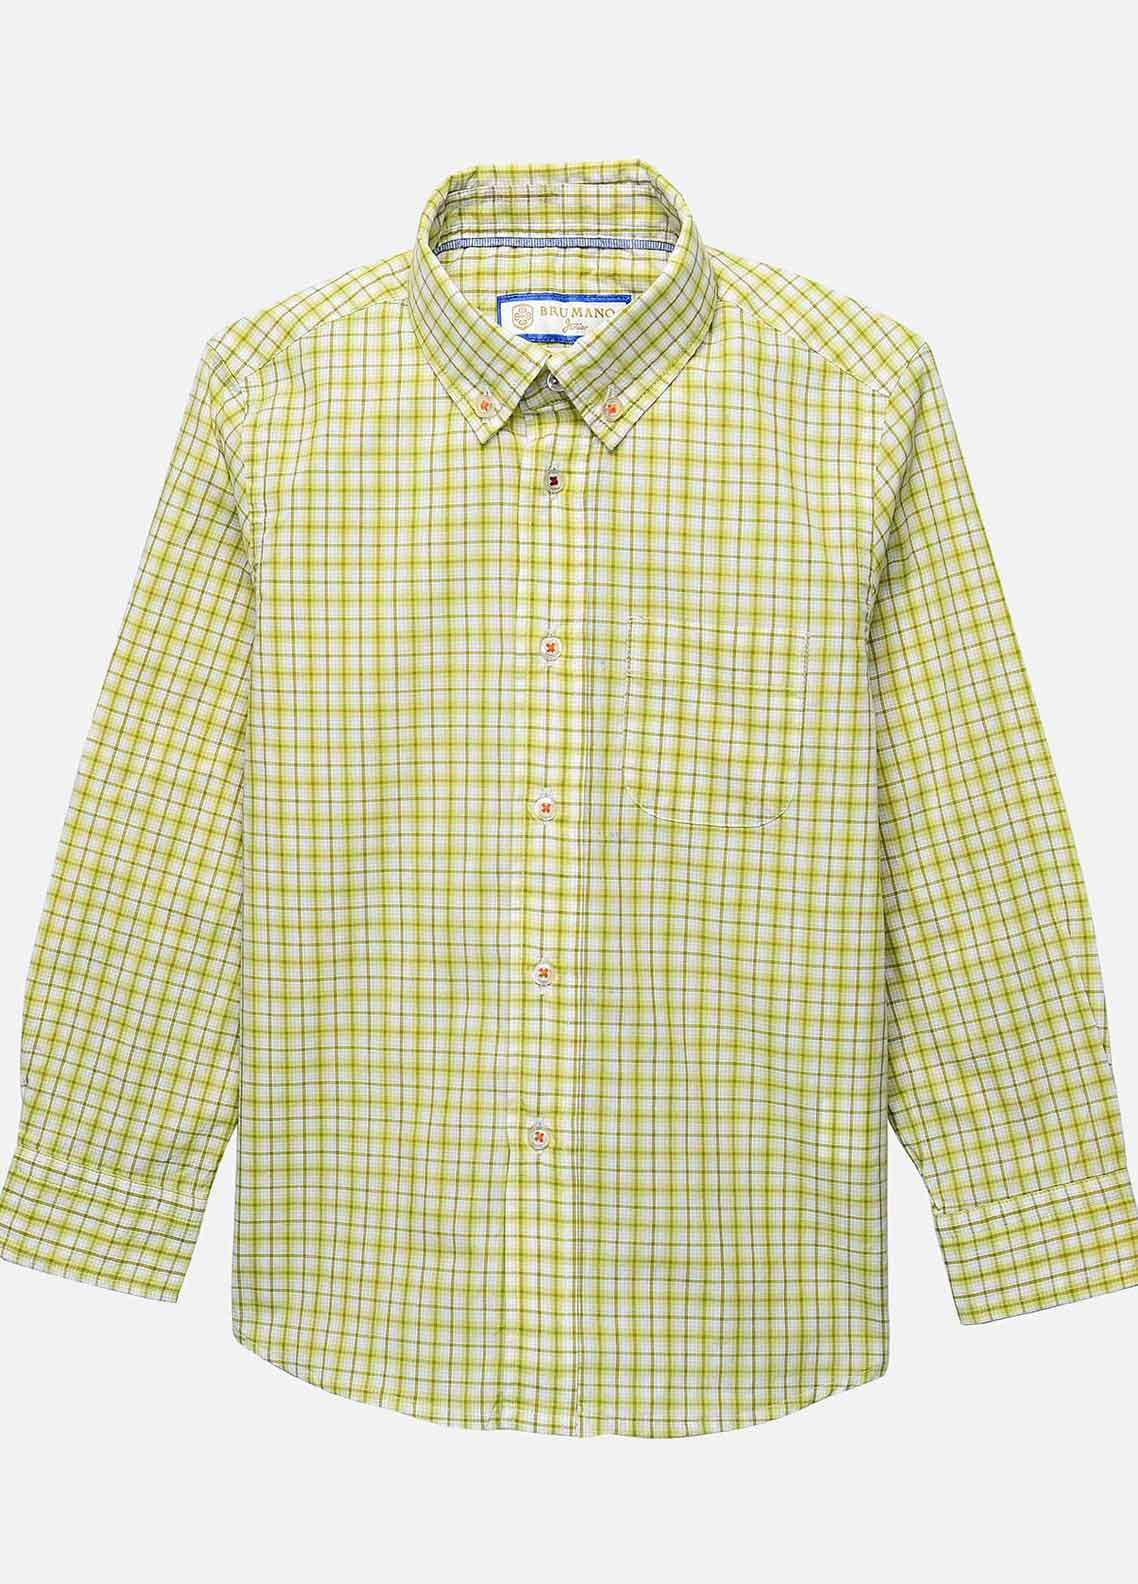 Brumano Cotton Casual Boys Shirts - BM20JS Lime Yellow Checkered Casual Shirt-Junior